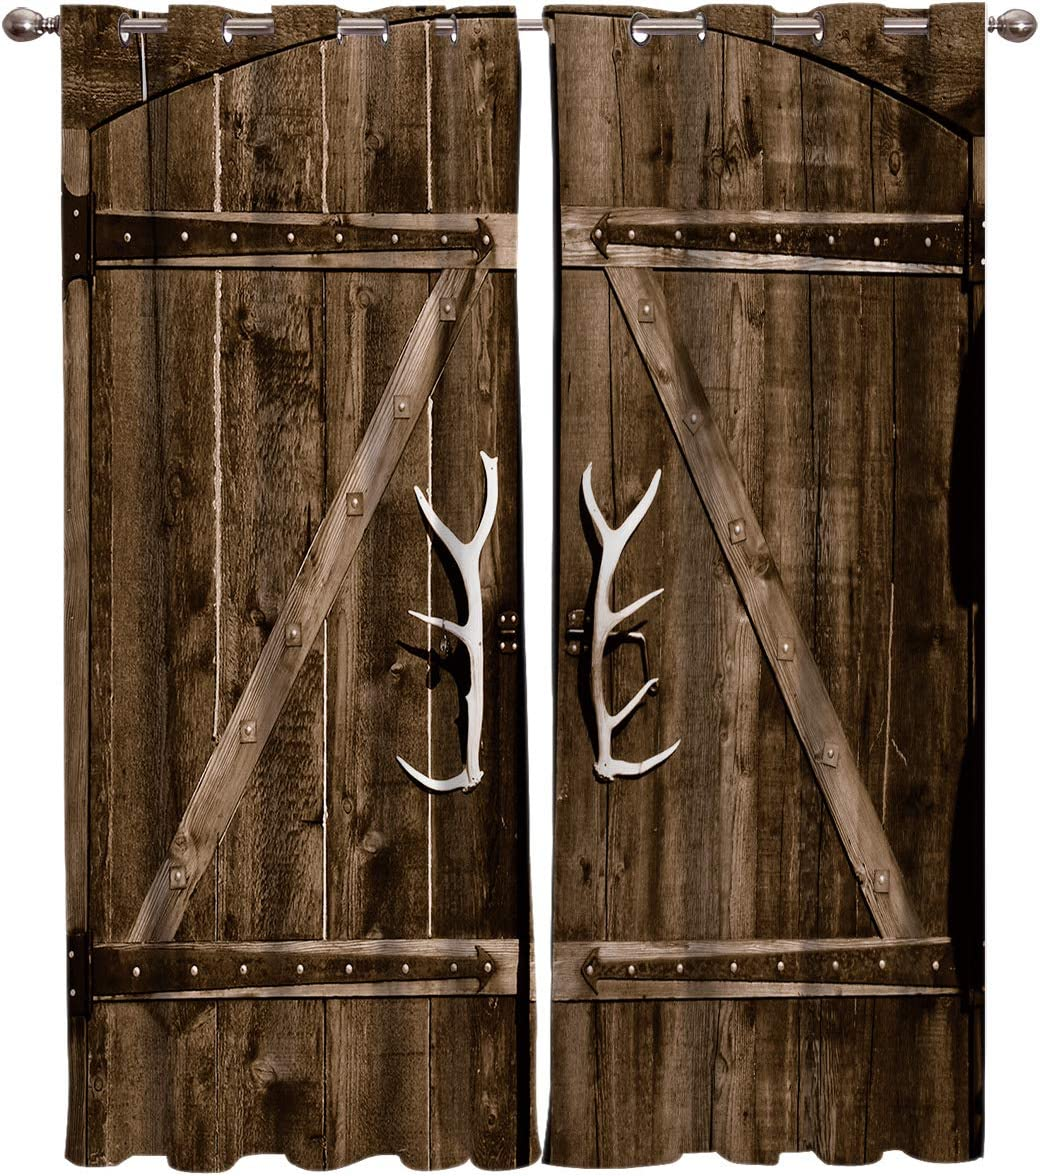 FortuneHouse8 Blackout Curtains Thermal Door Max 50% Columbus Mall OFF Insulated Antlers W